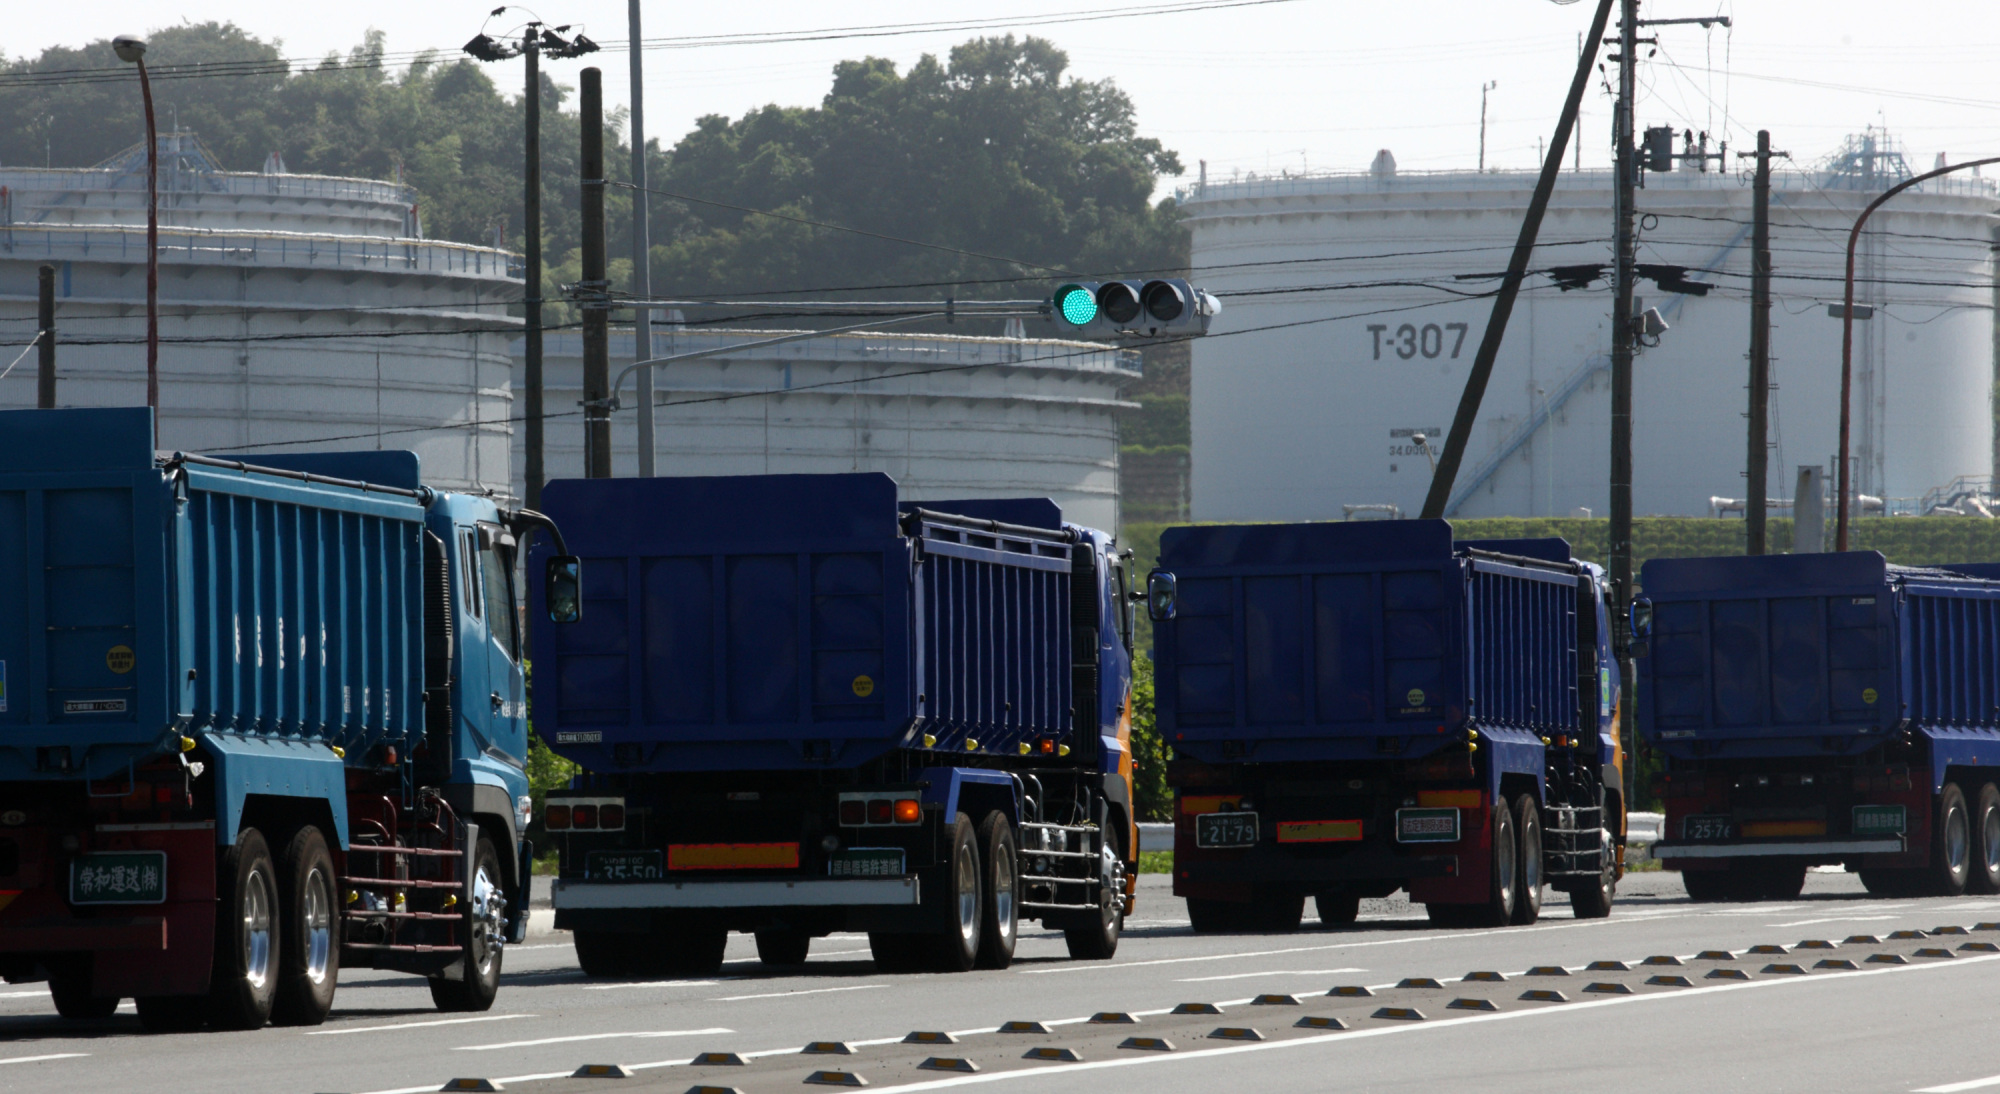 Trucks carrying coal roll past an oil terminal at Onahama port in the city of Iwaki, Fukushima Prefecture. | BLOOMBERG